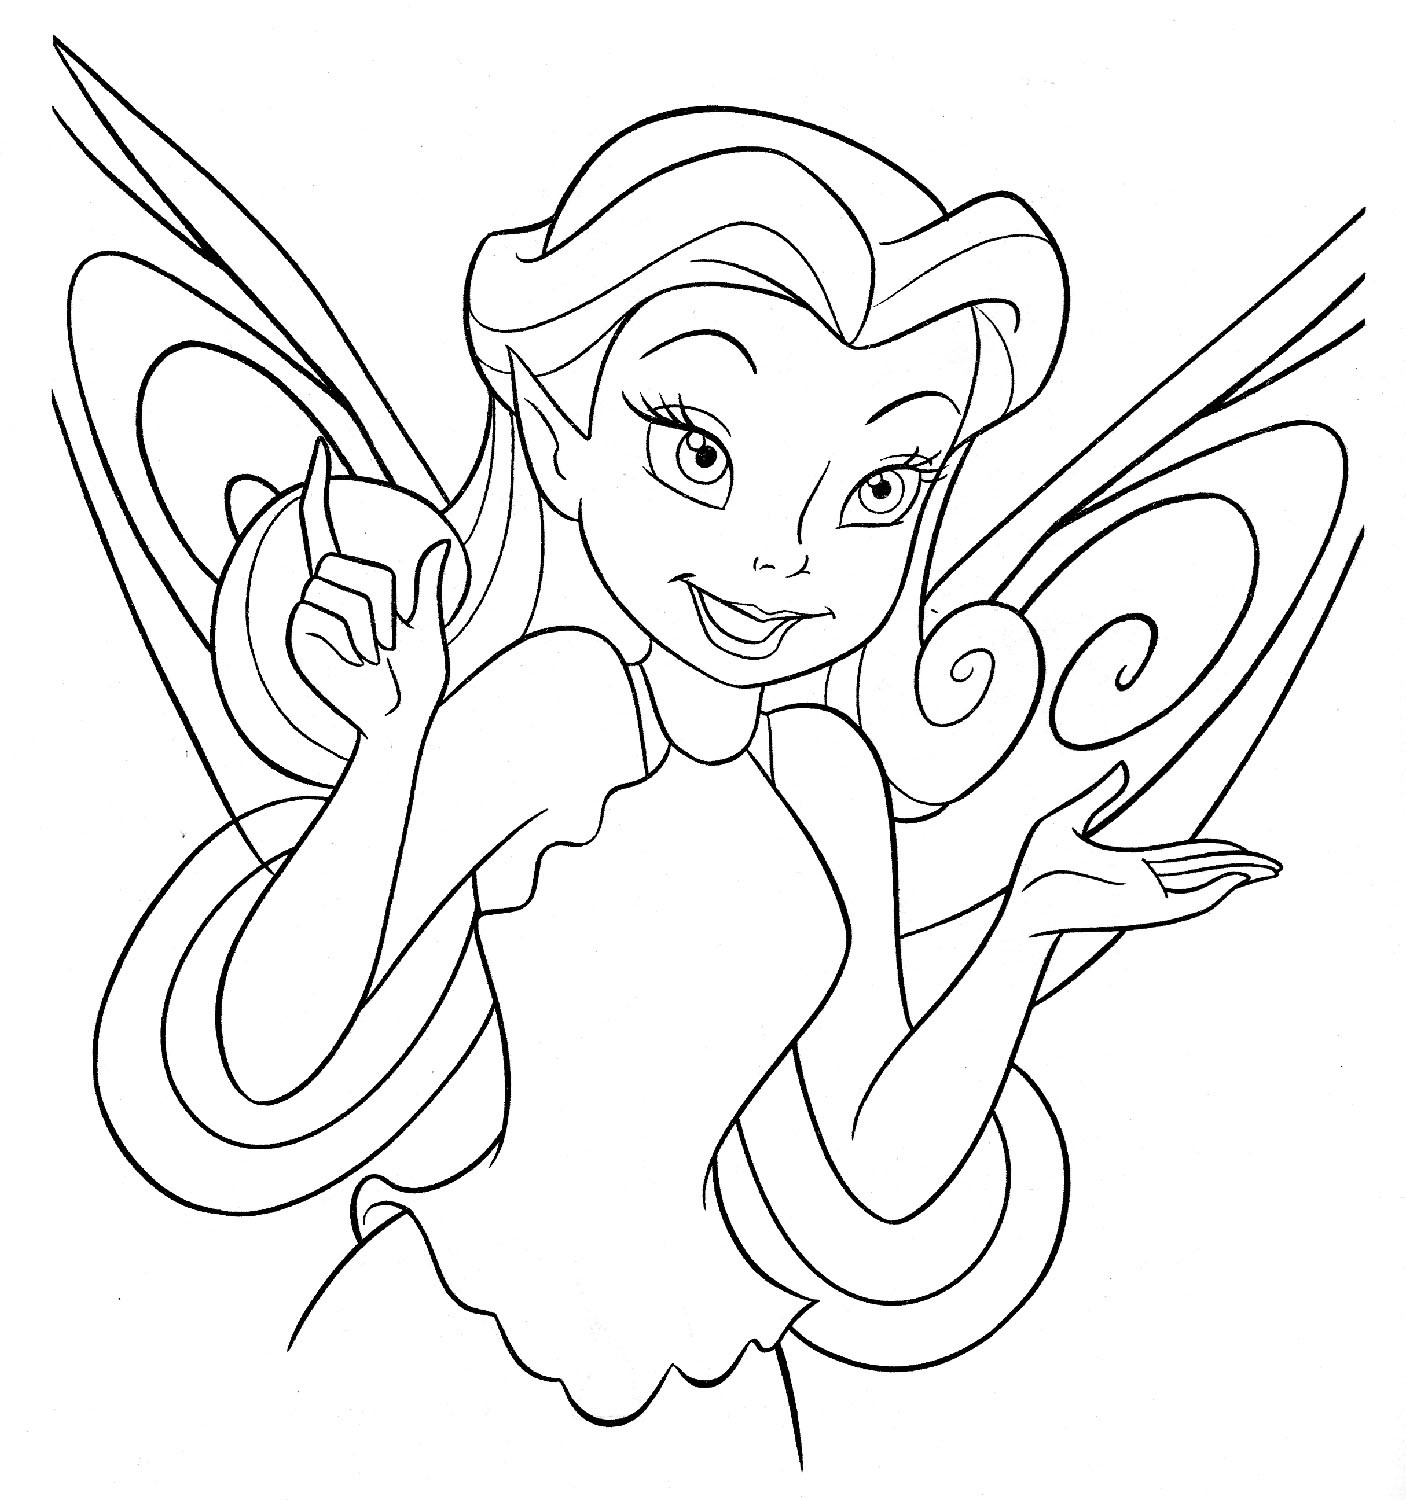 Tinker Bell Coloring Pages For Girls  36 Disney Tinkerbell coloring pages for Girls